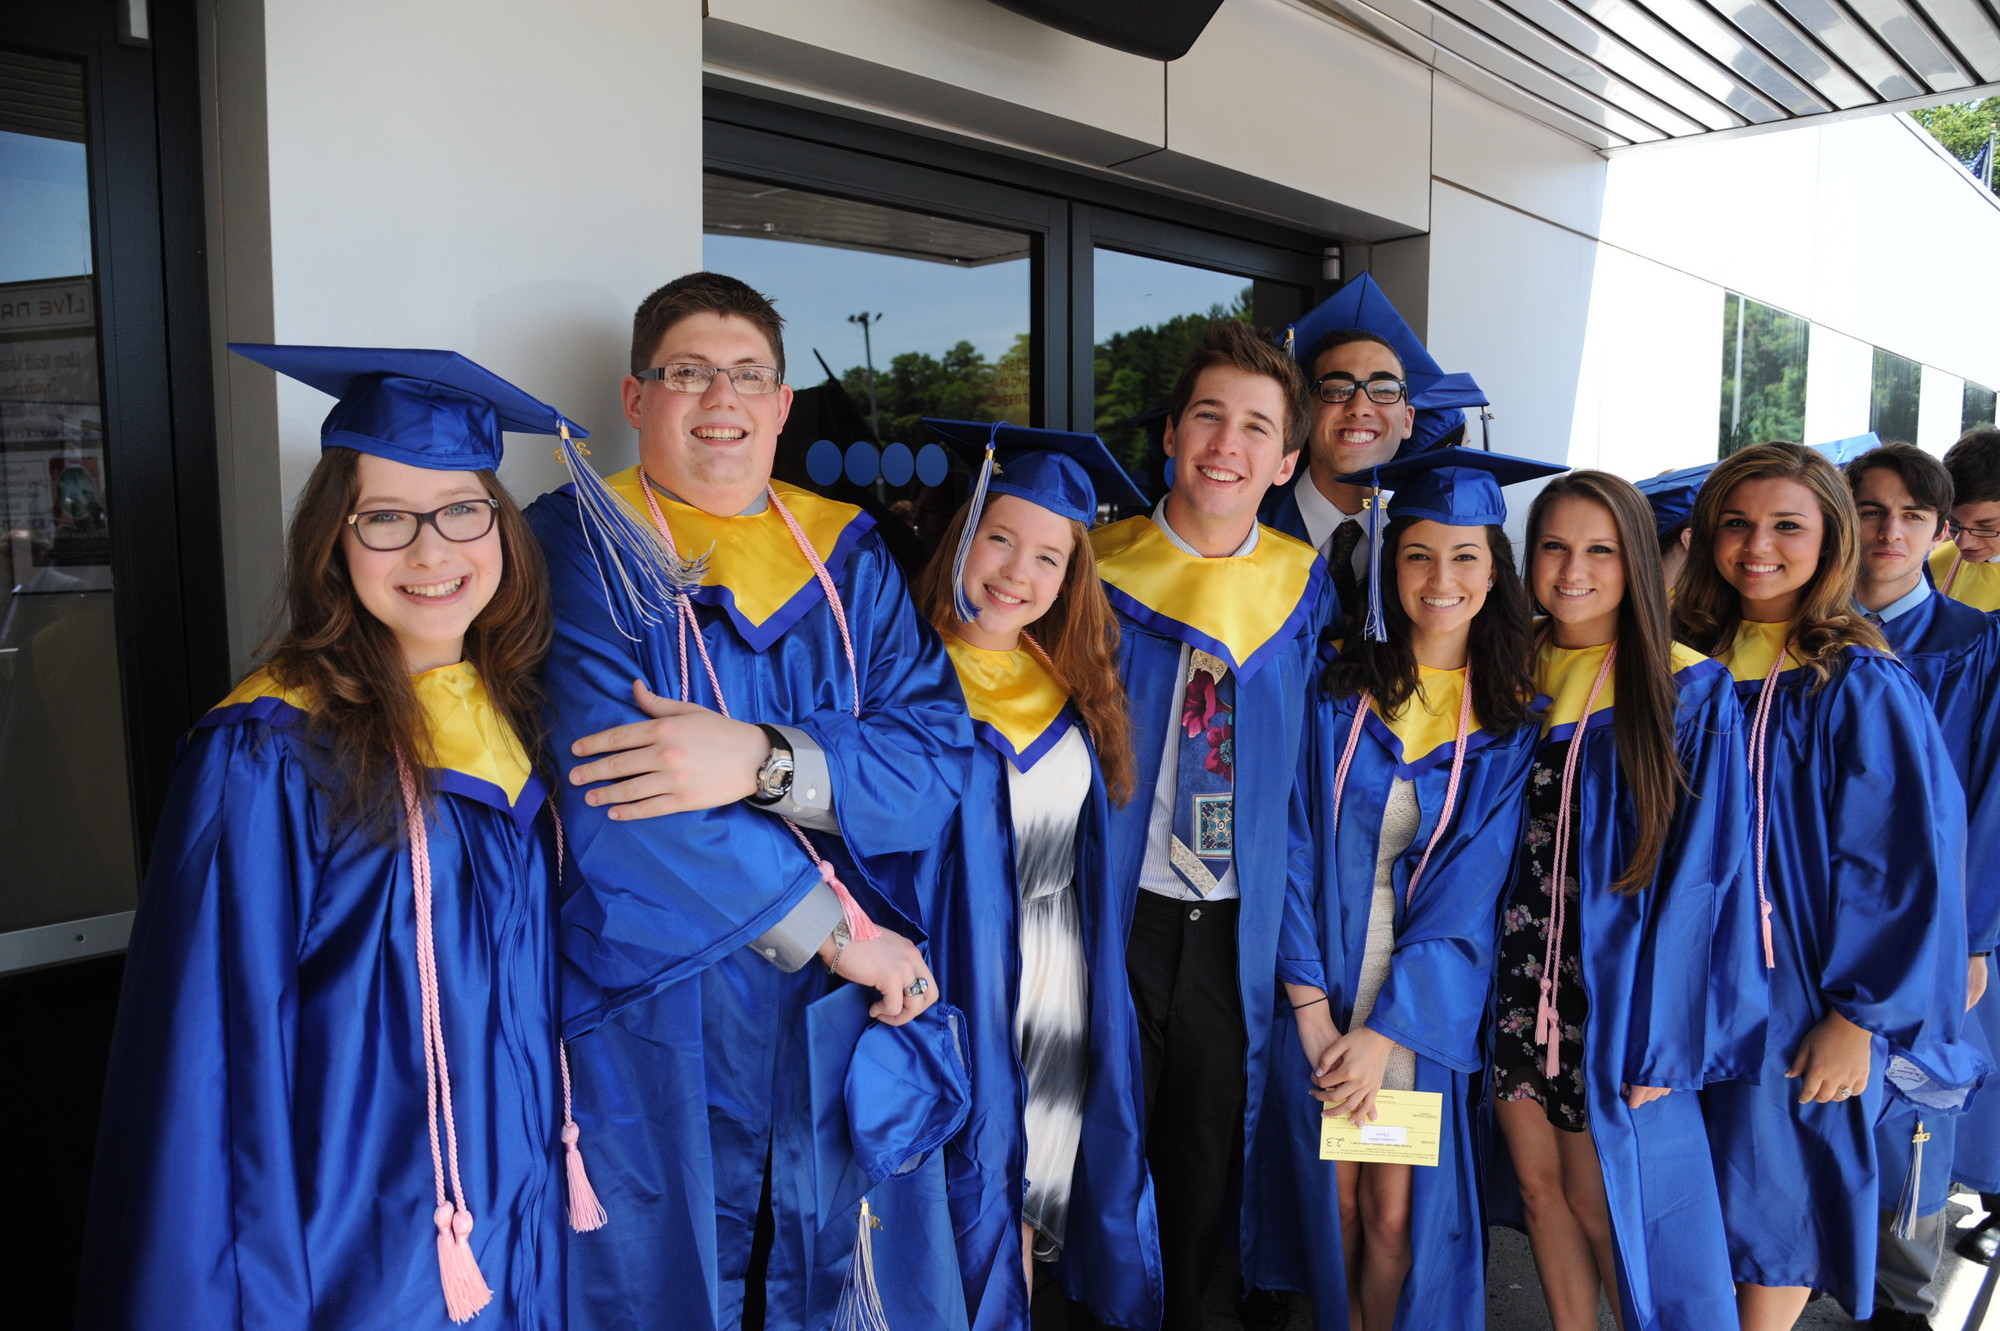 Calhoun's class of 2013 was ready to graduate at the NYCB Theater in Westbury.